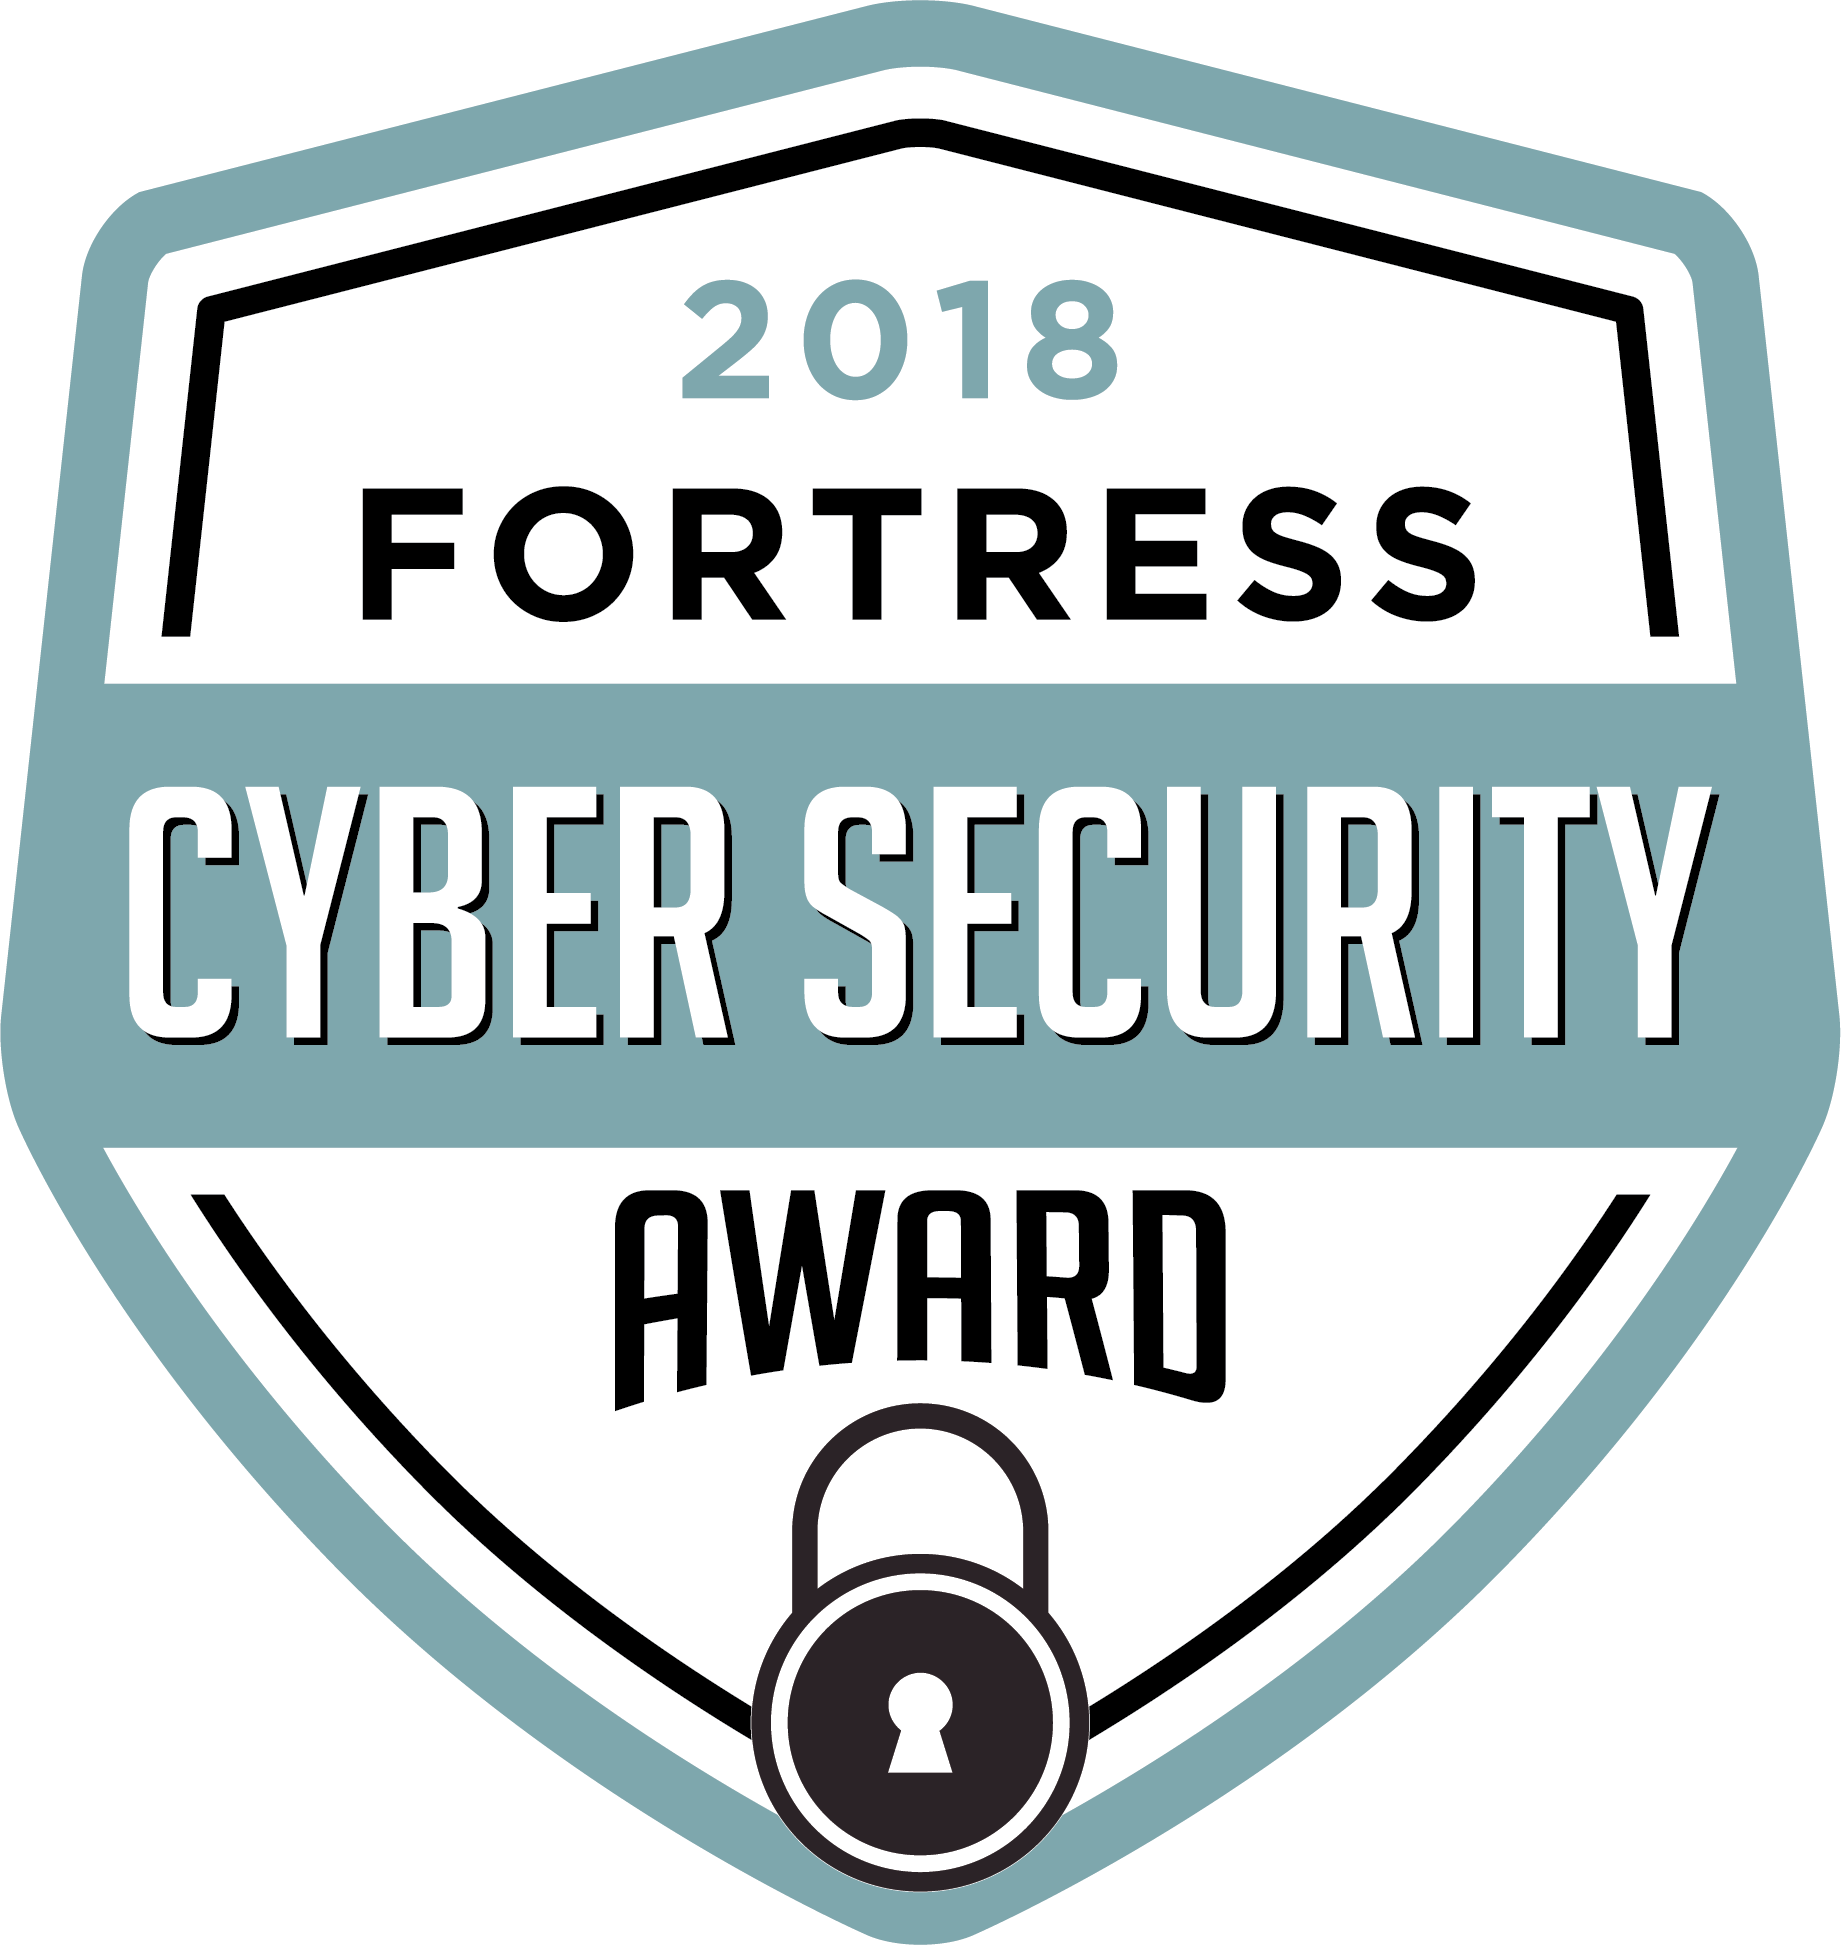 2018 Fortress Award, Cyber Security